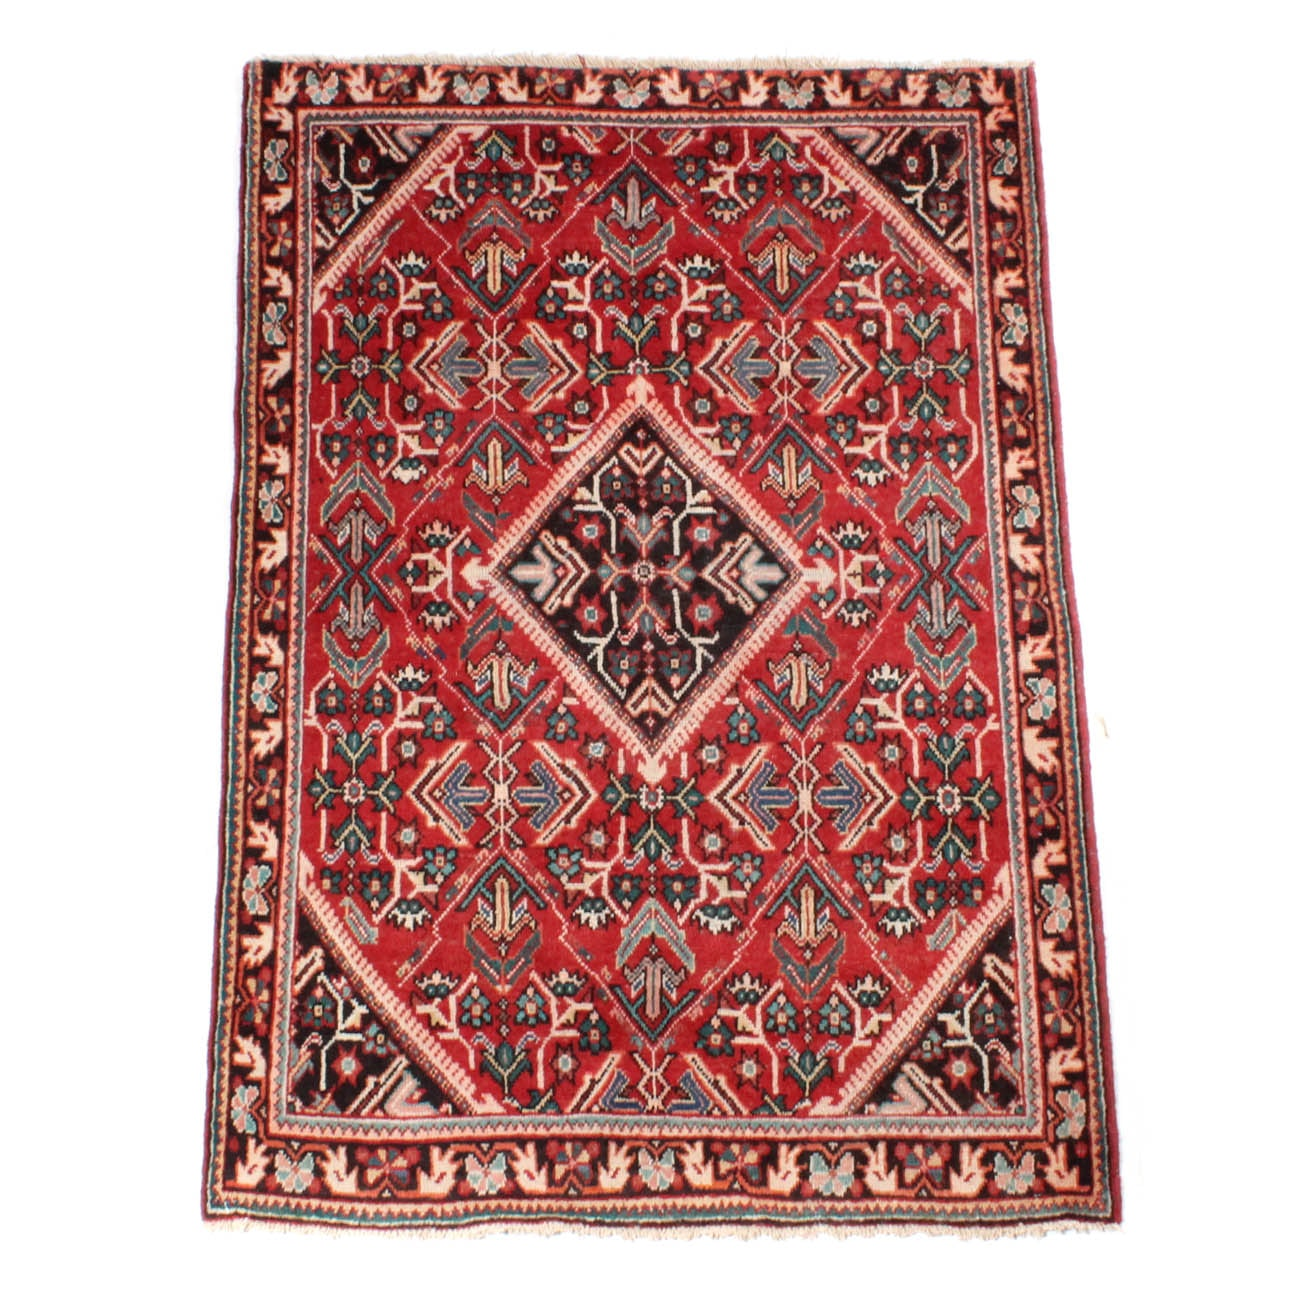 6' x 4' Vintage Hand-Knotted Persian Sultanabad Sarouk Area Rug